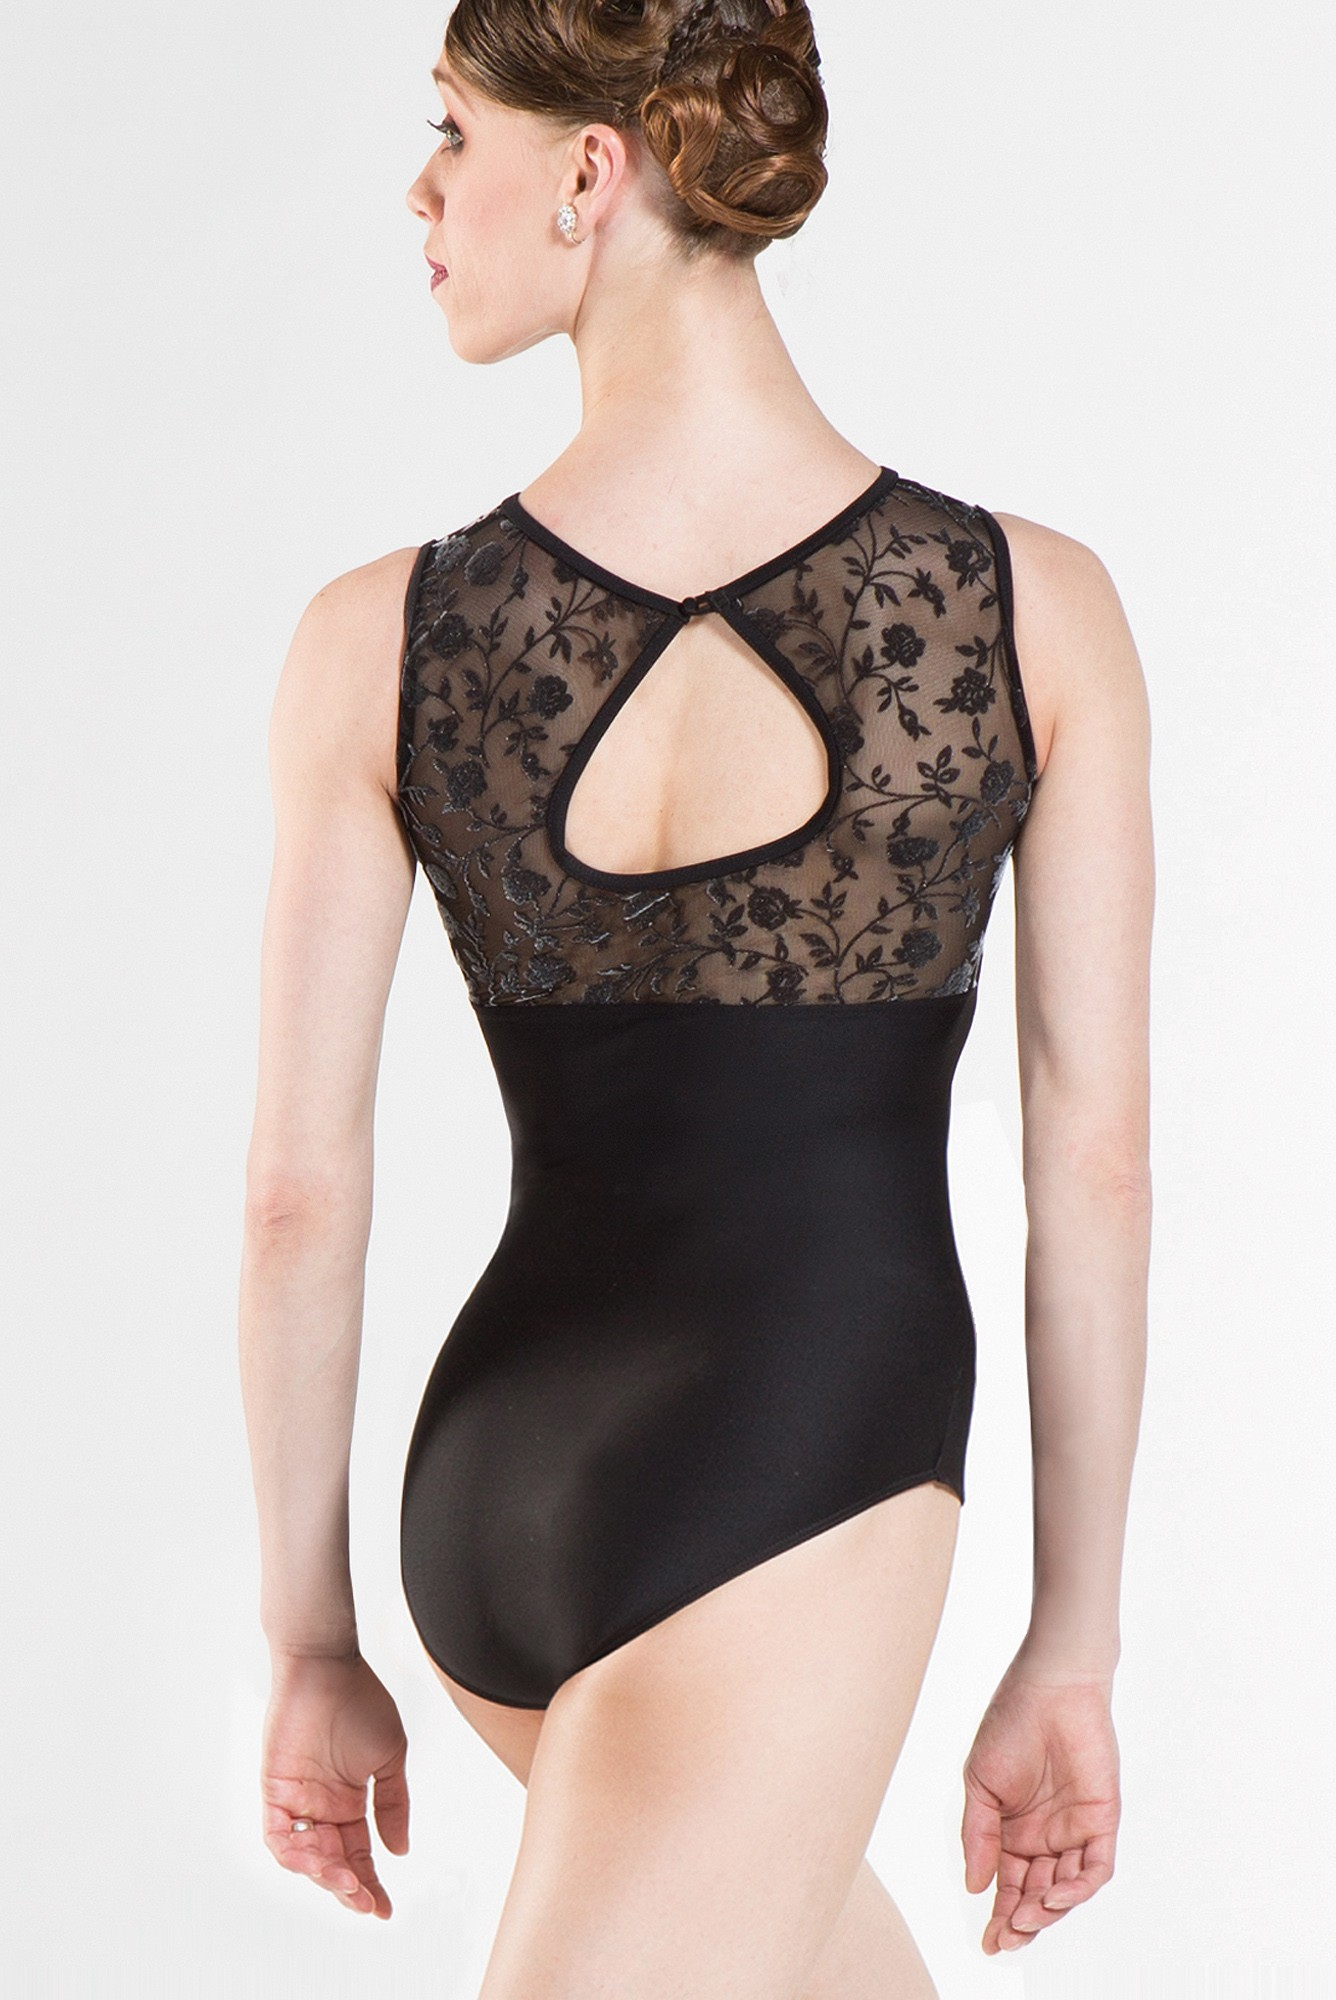 Wear Moi Majeste. The faux sweetheart line of this soft and comfortable leotard is complimented with a one button closure on the back of the neck, creating a key-hole look. Featuring 3-D flocked stretch tulle and soft microfiber. Fully front lined.